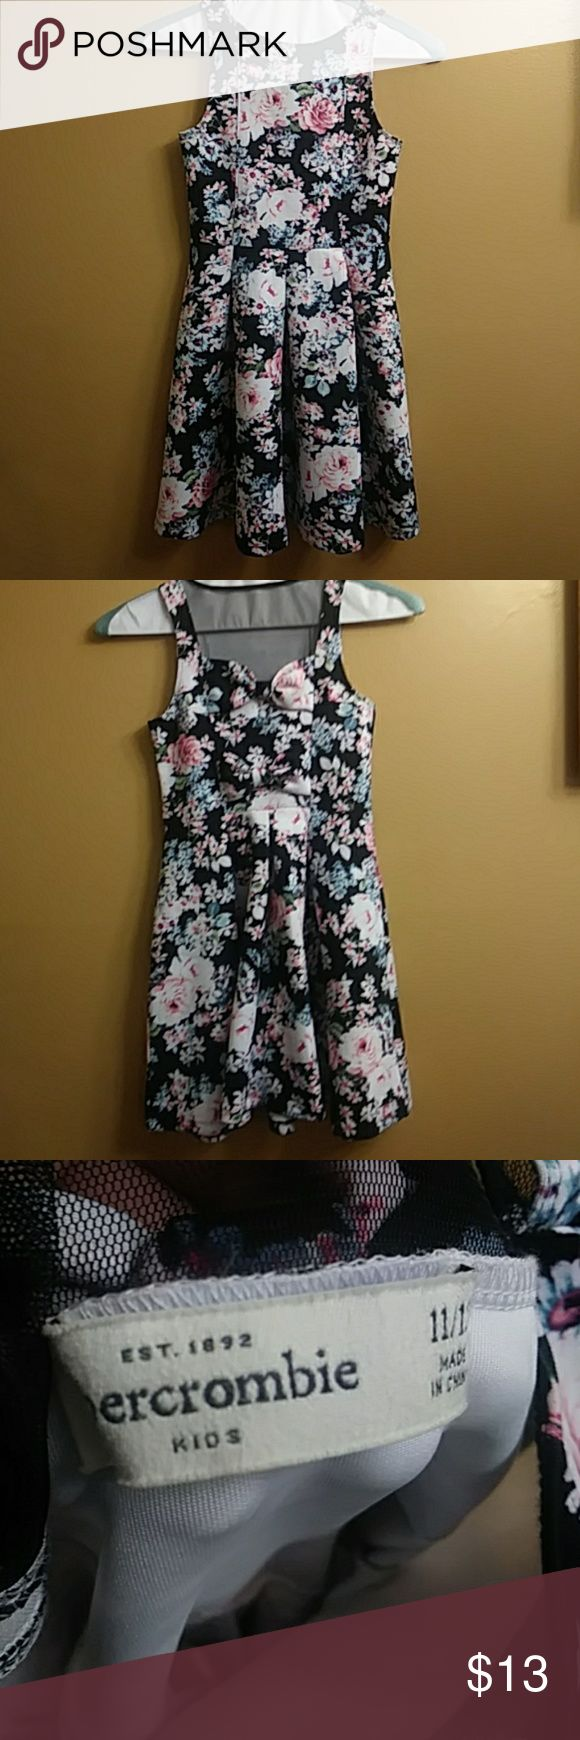 """💞Abercrombie Dress💞 Black with floral print and large pleats.  Screen netting and bows accents the back.  Lovely dress for a lovely girl!!  Measures 16"""" from waist to bottom hem.  In EXCELLENT condition!!  Smokefree home!!  Size 11/12.👍BUNDLE OFFERS👍 Abercombie Kids Dresses"""